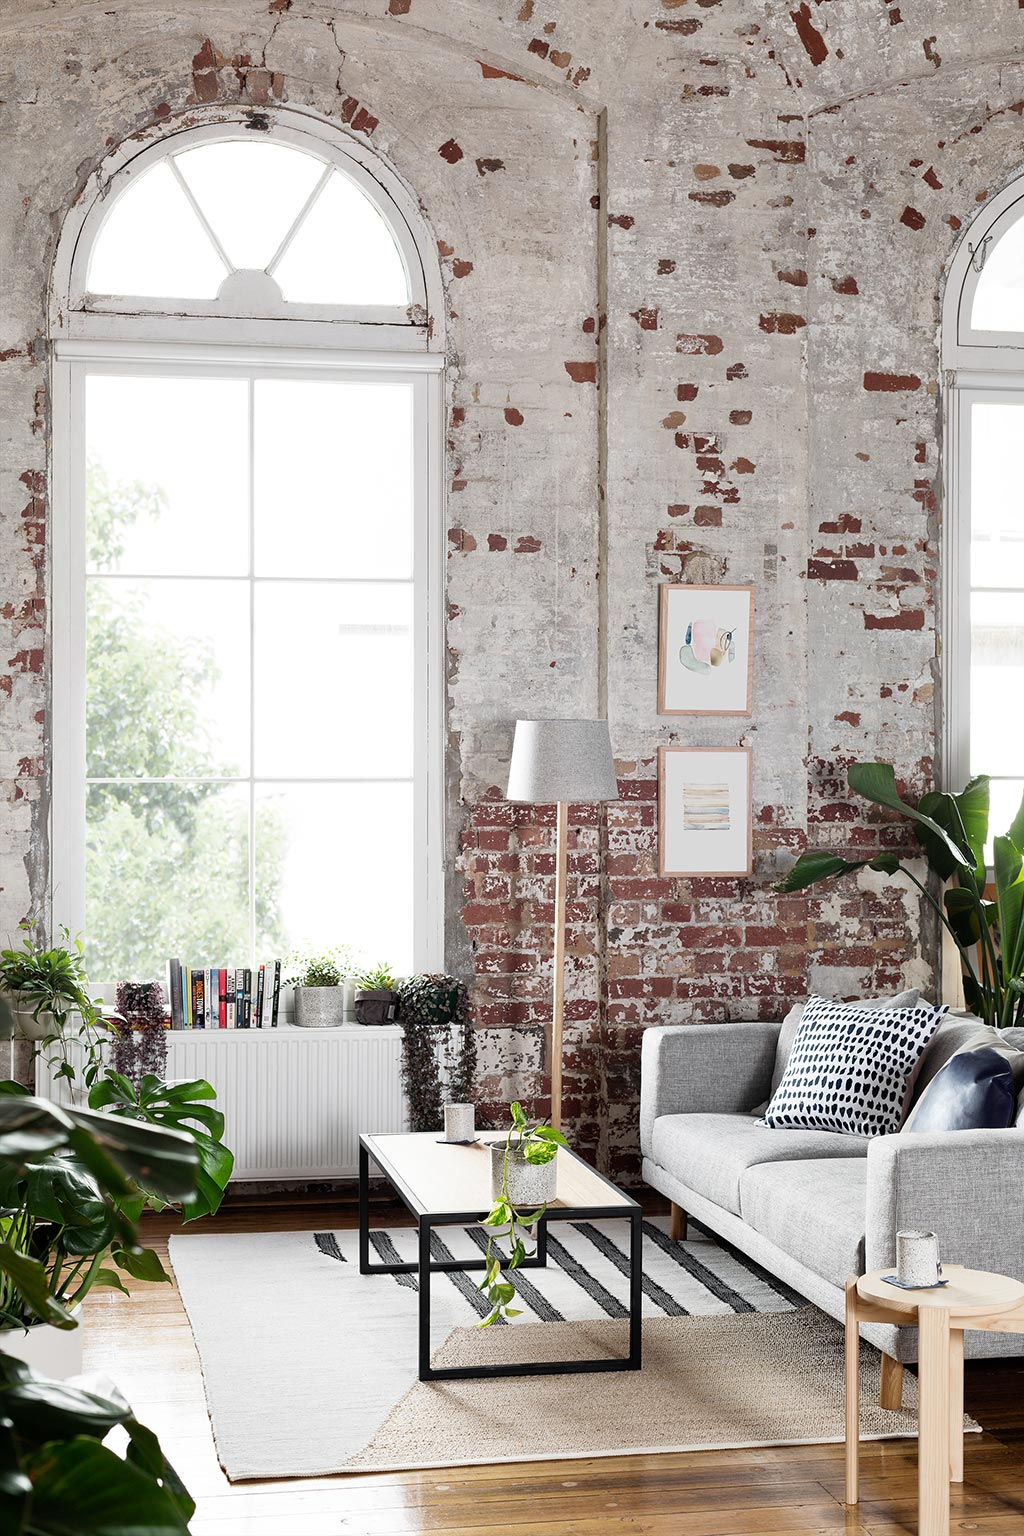 loft interior, mid century modern, interior design, boho style, bricks interior, houseplants